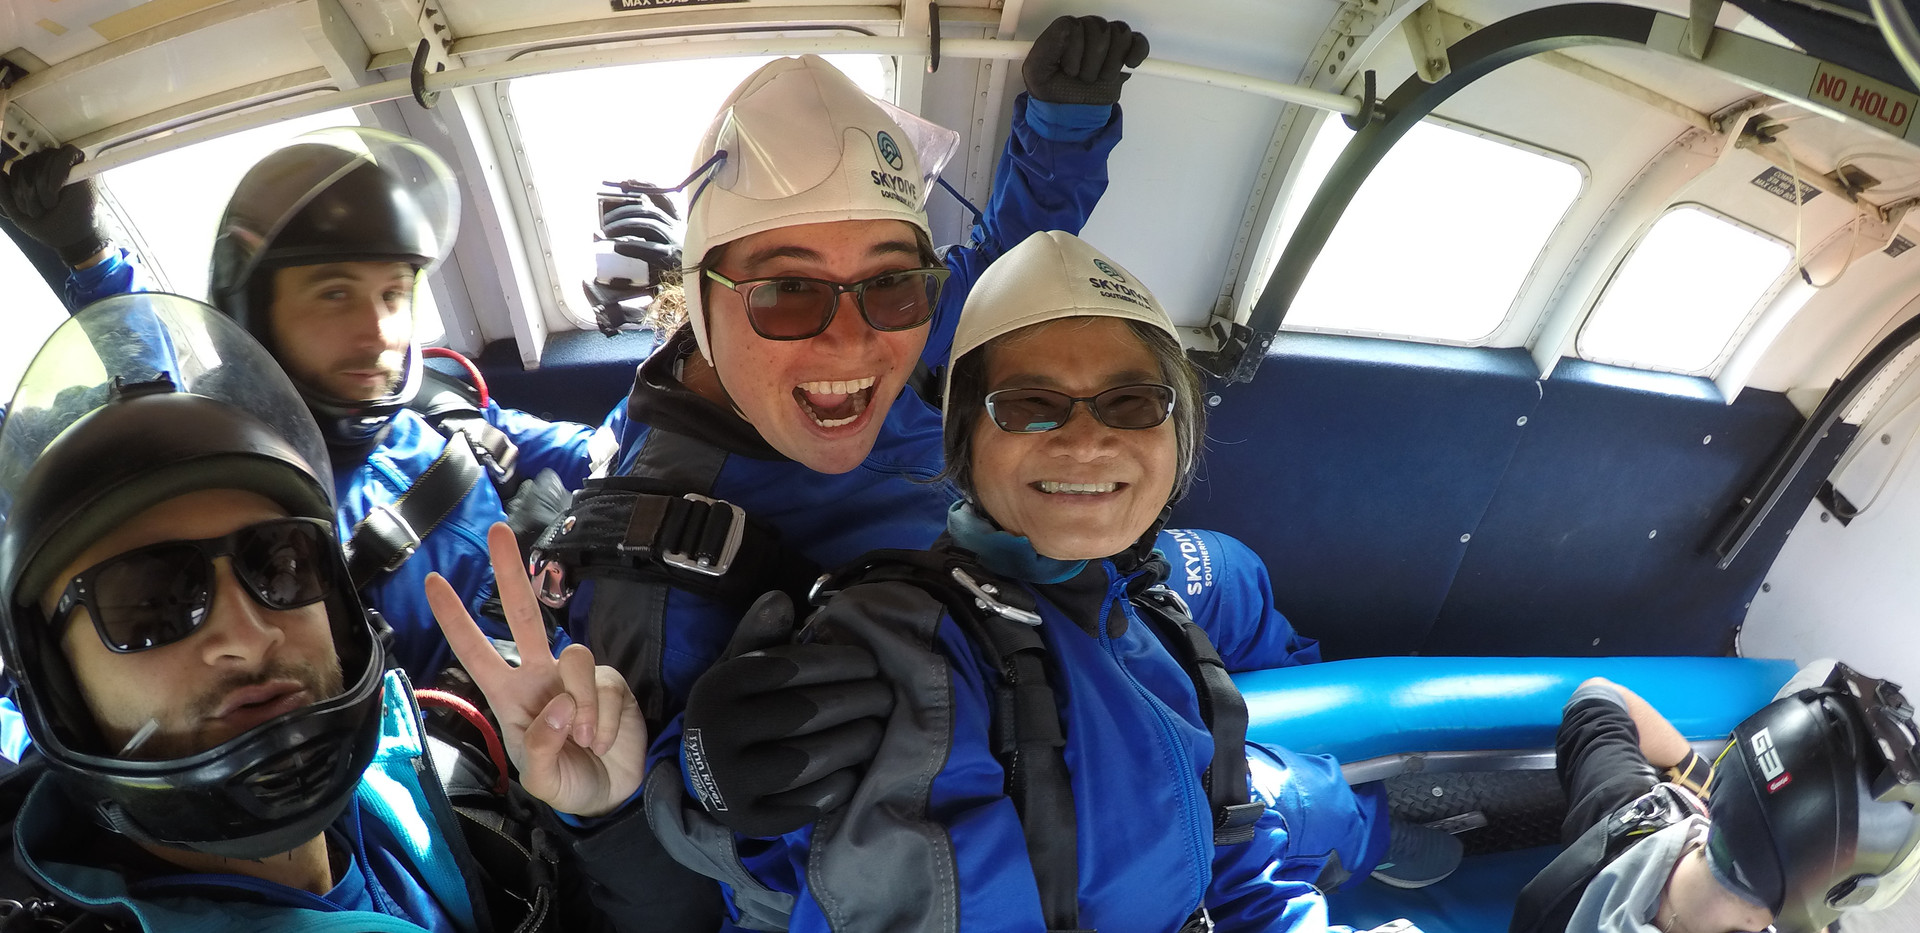 2019 skydiving Glenorchy New Zealand air